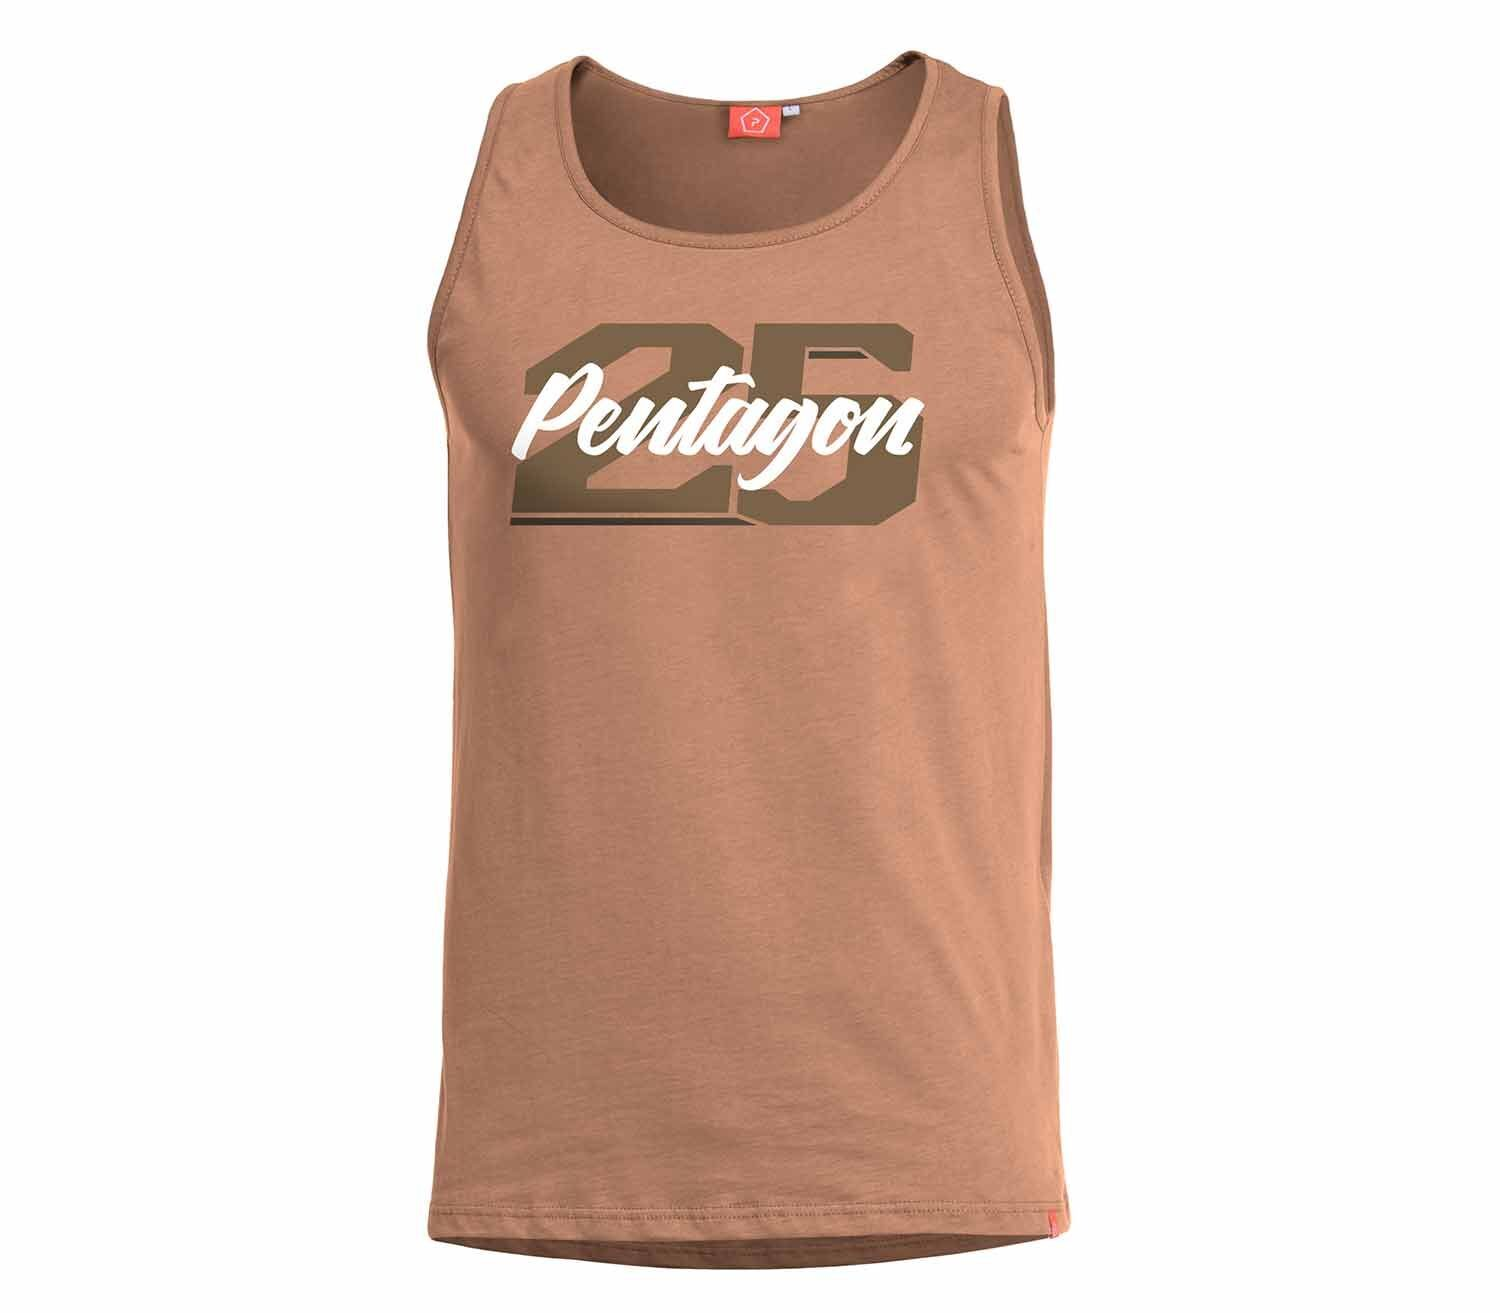 Camiseta-Pentagon-Astir-Twenty-Five-Coyote.jpg